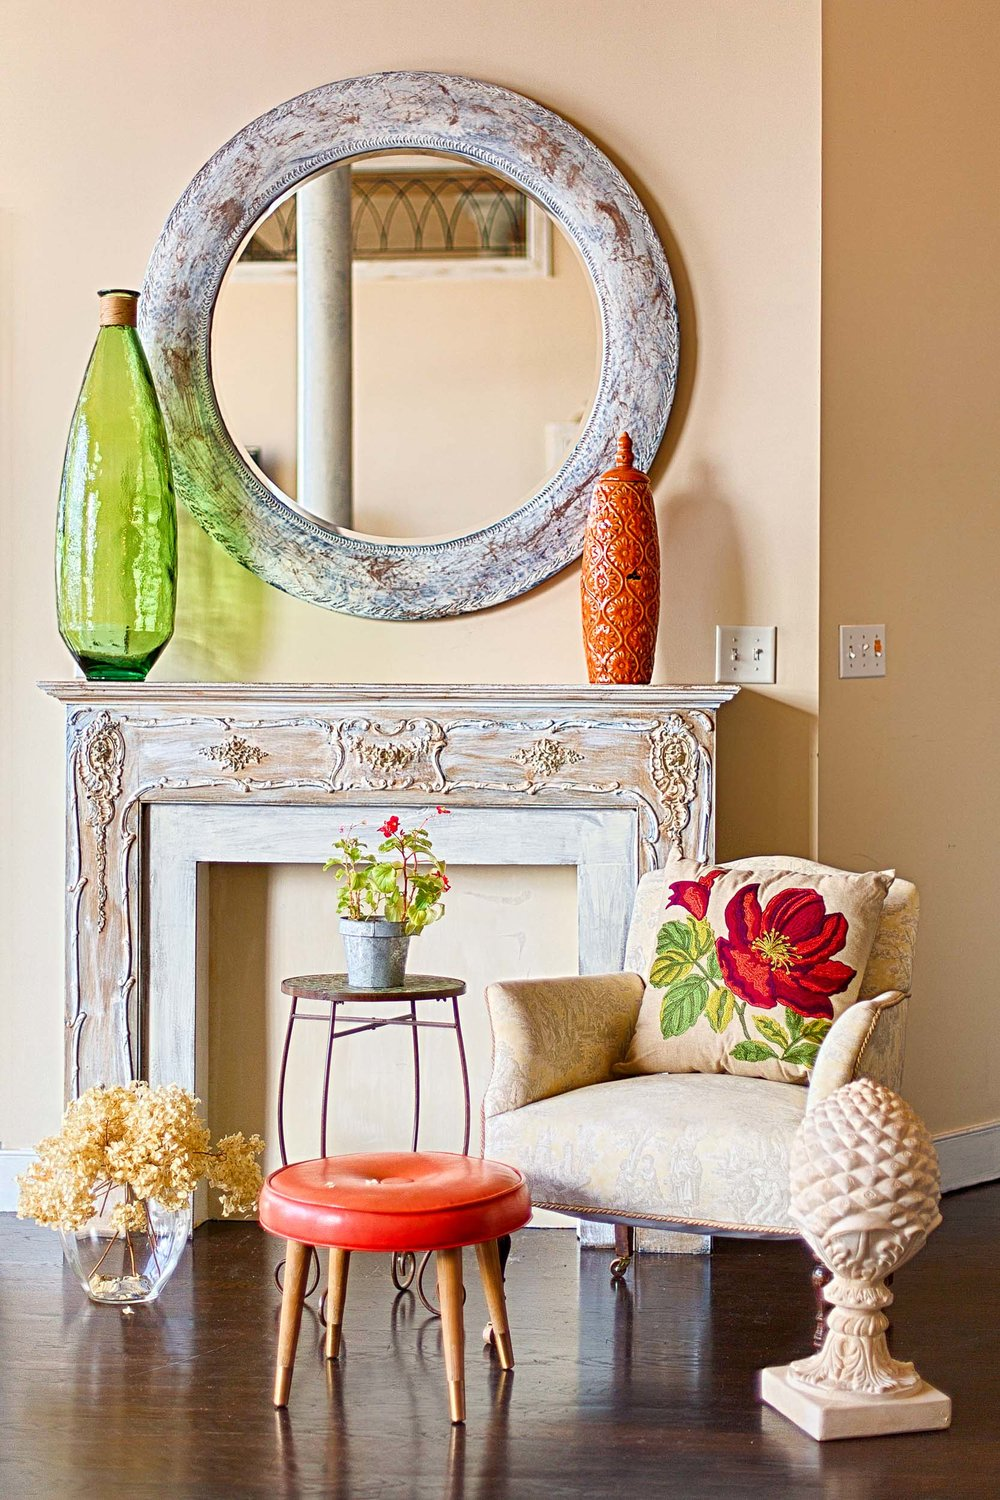 Traditional design elements bring warmth to the space.